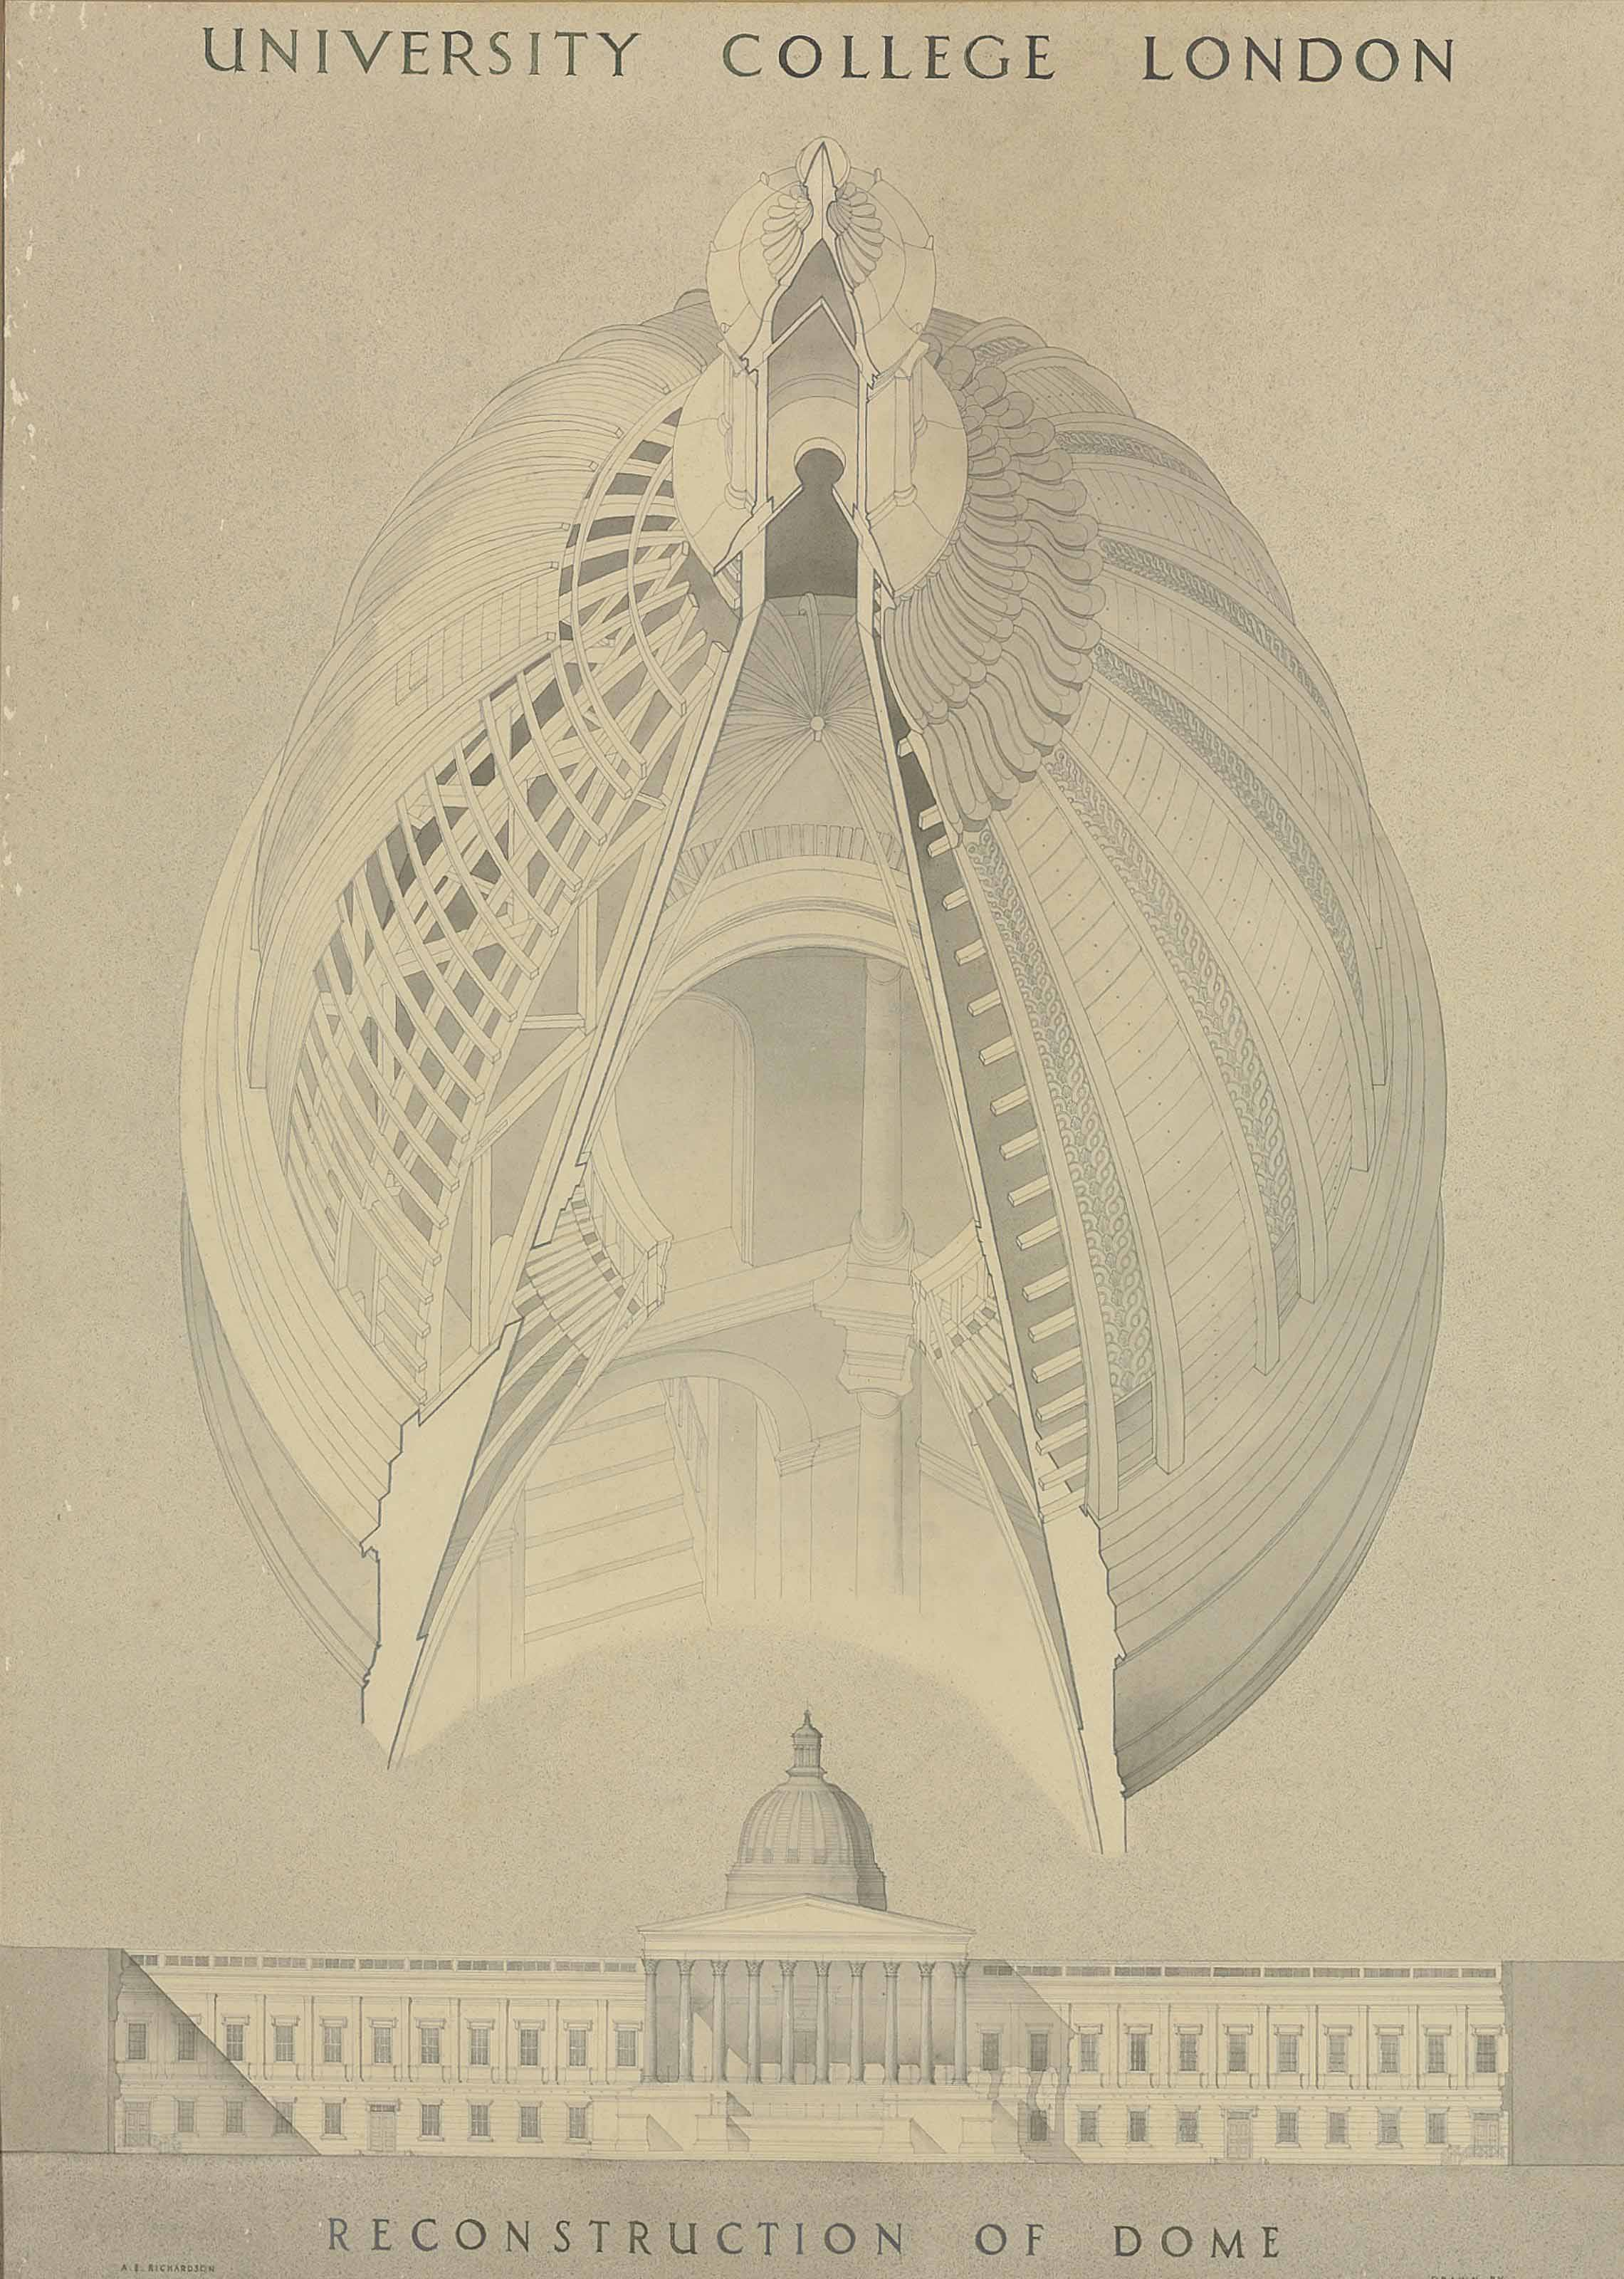 Reconstruction of the Dome of University College London